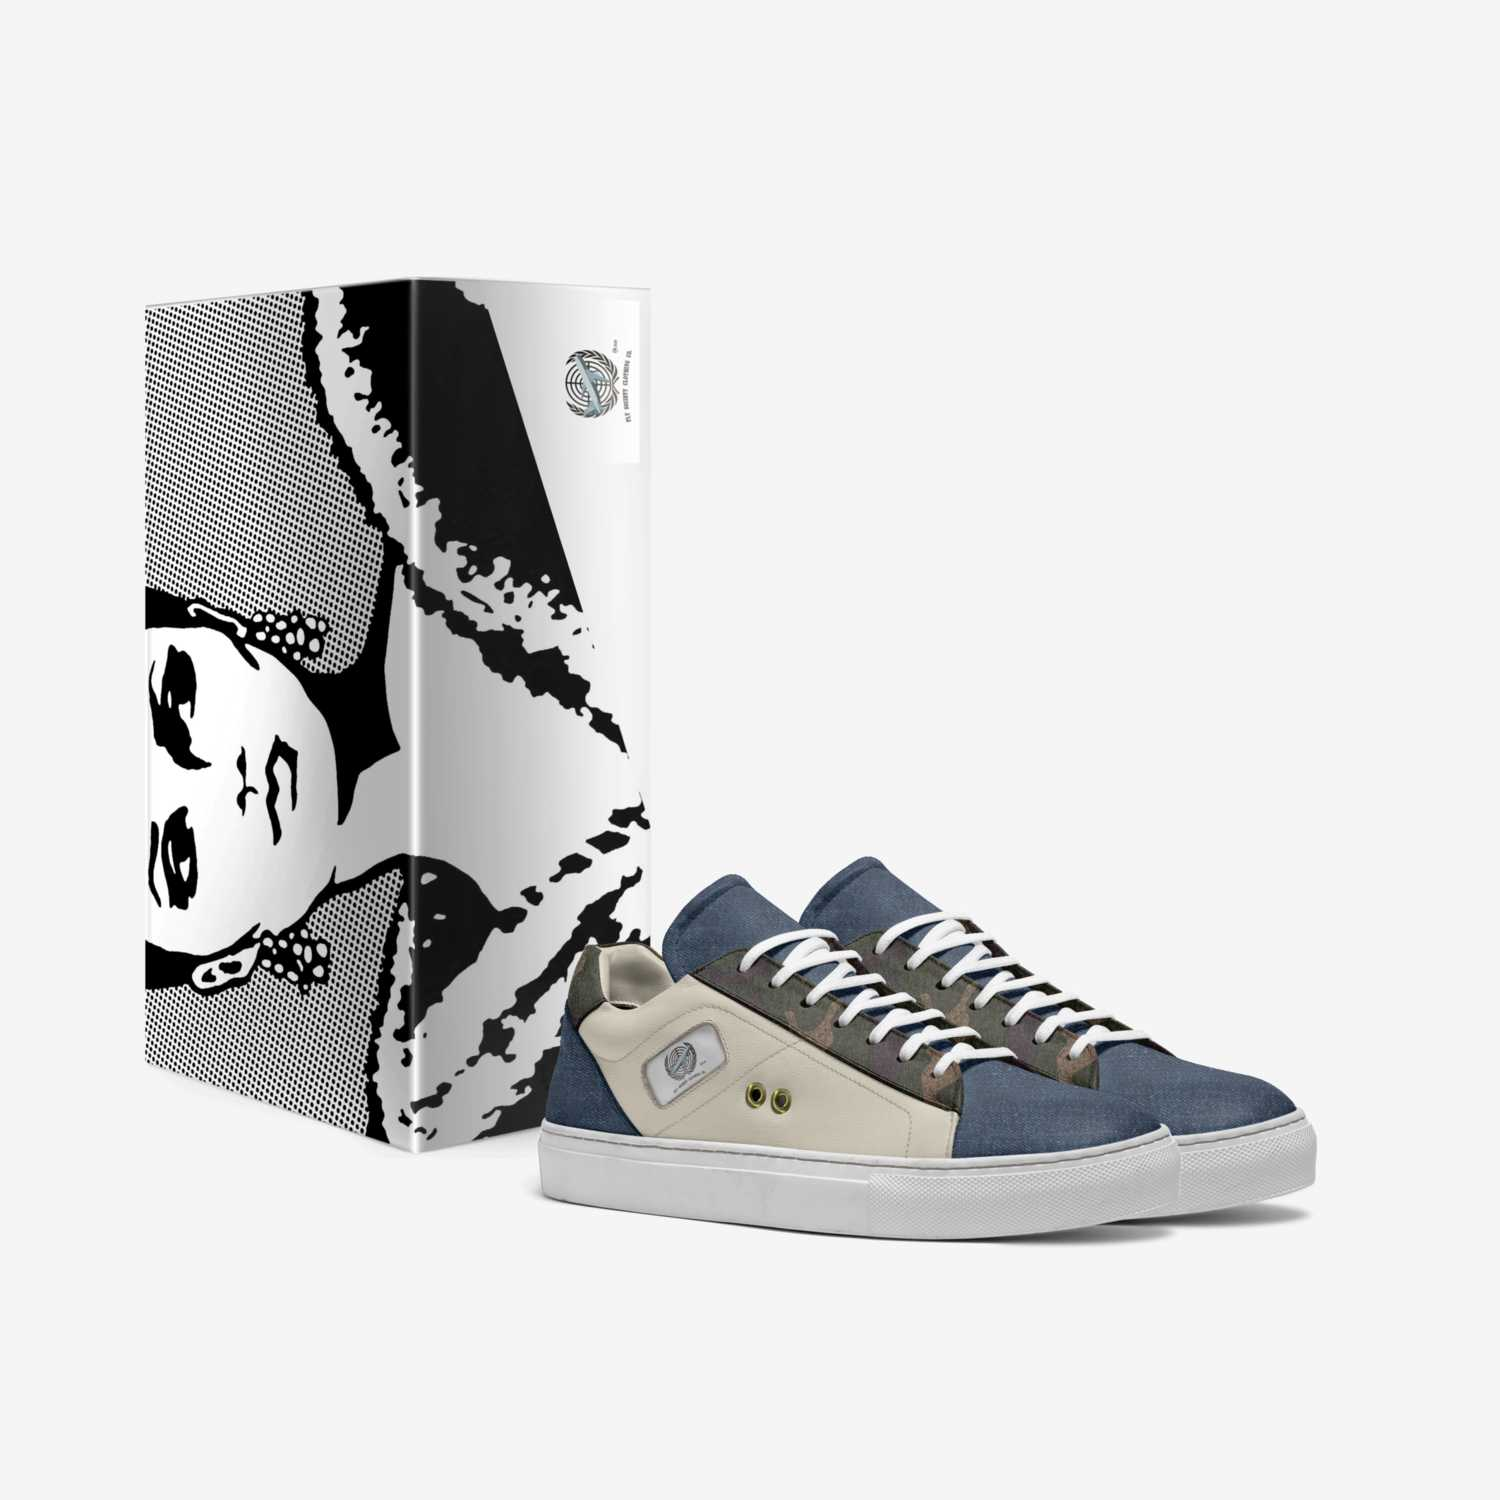 FLY SOCIETY 4 custom made in Italy shoes by Brent Johnson | Box view